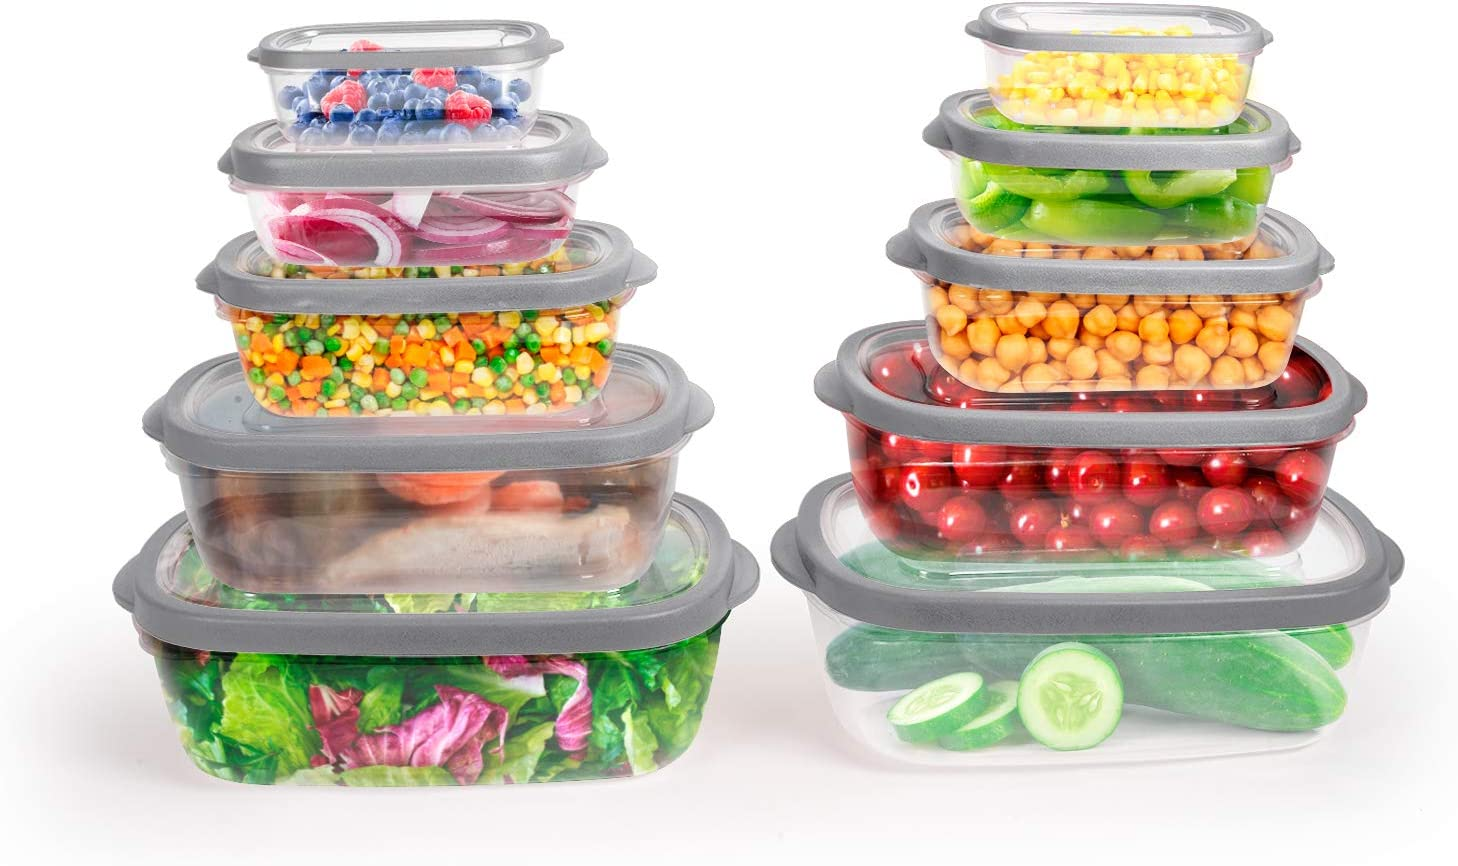 Totally Kitchen Rectangle Food Containers | Microwave Safe & BPA Free | Thick, Durable & Leak Resistant | Grey, Set of 10 (20 Pieces Total)